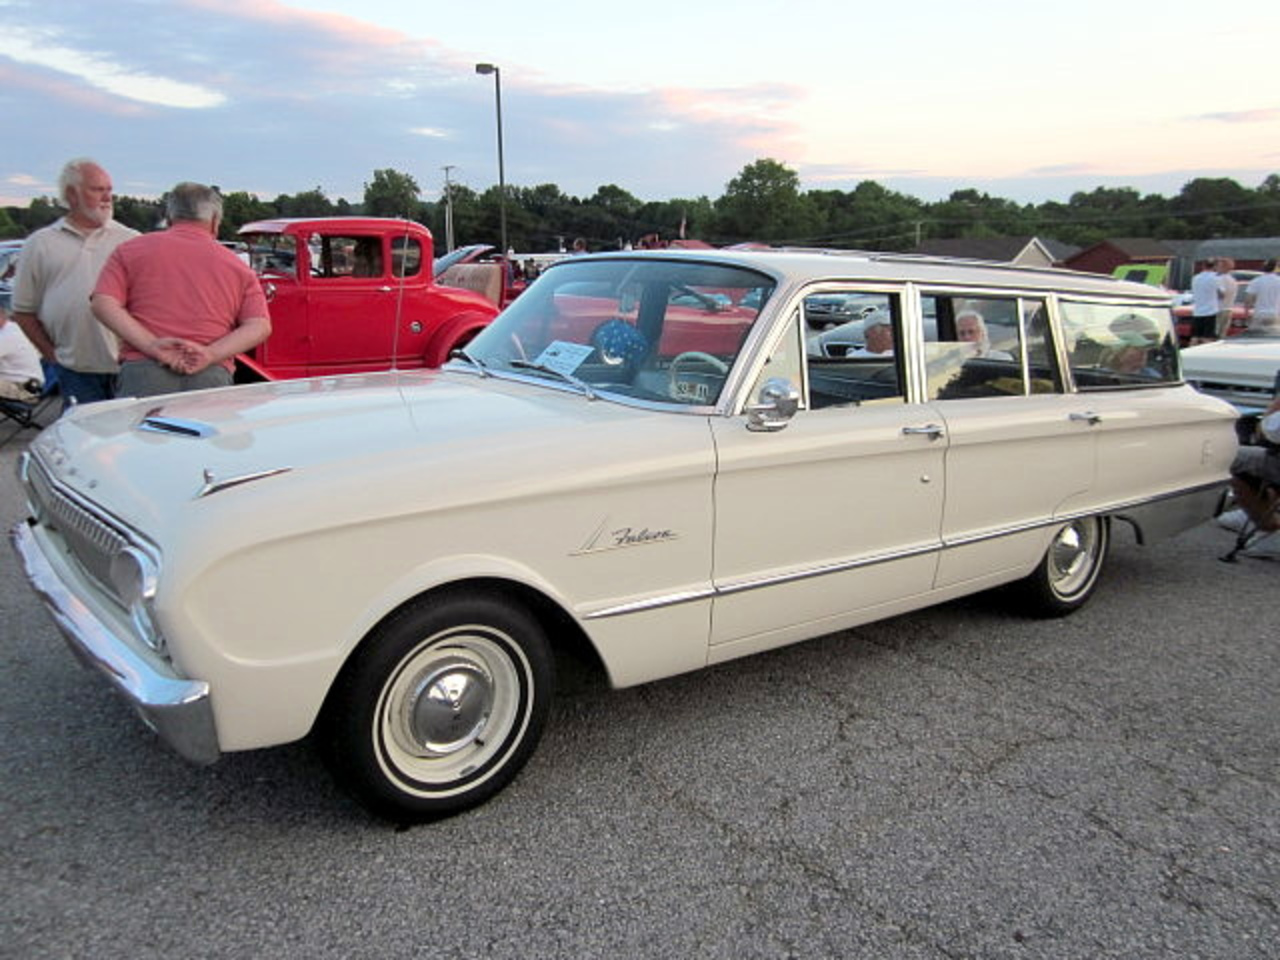 1962 Ford Falcon Wagon | Flickr - Photo Sharing!